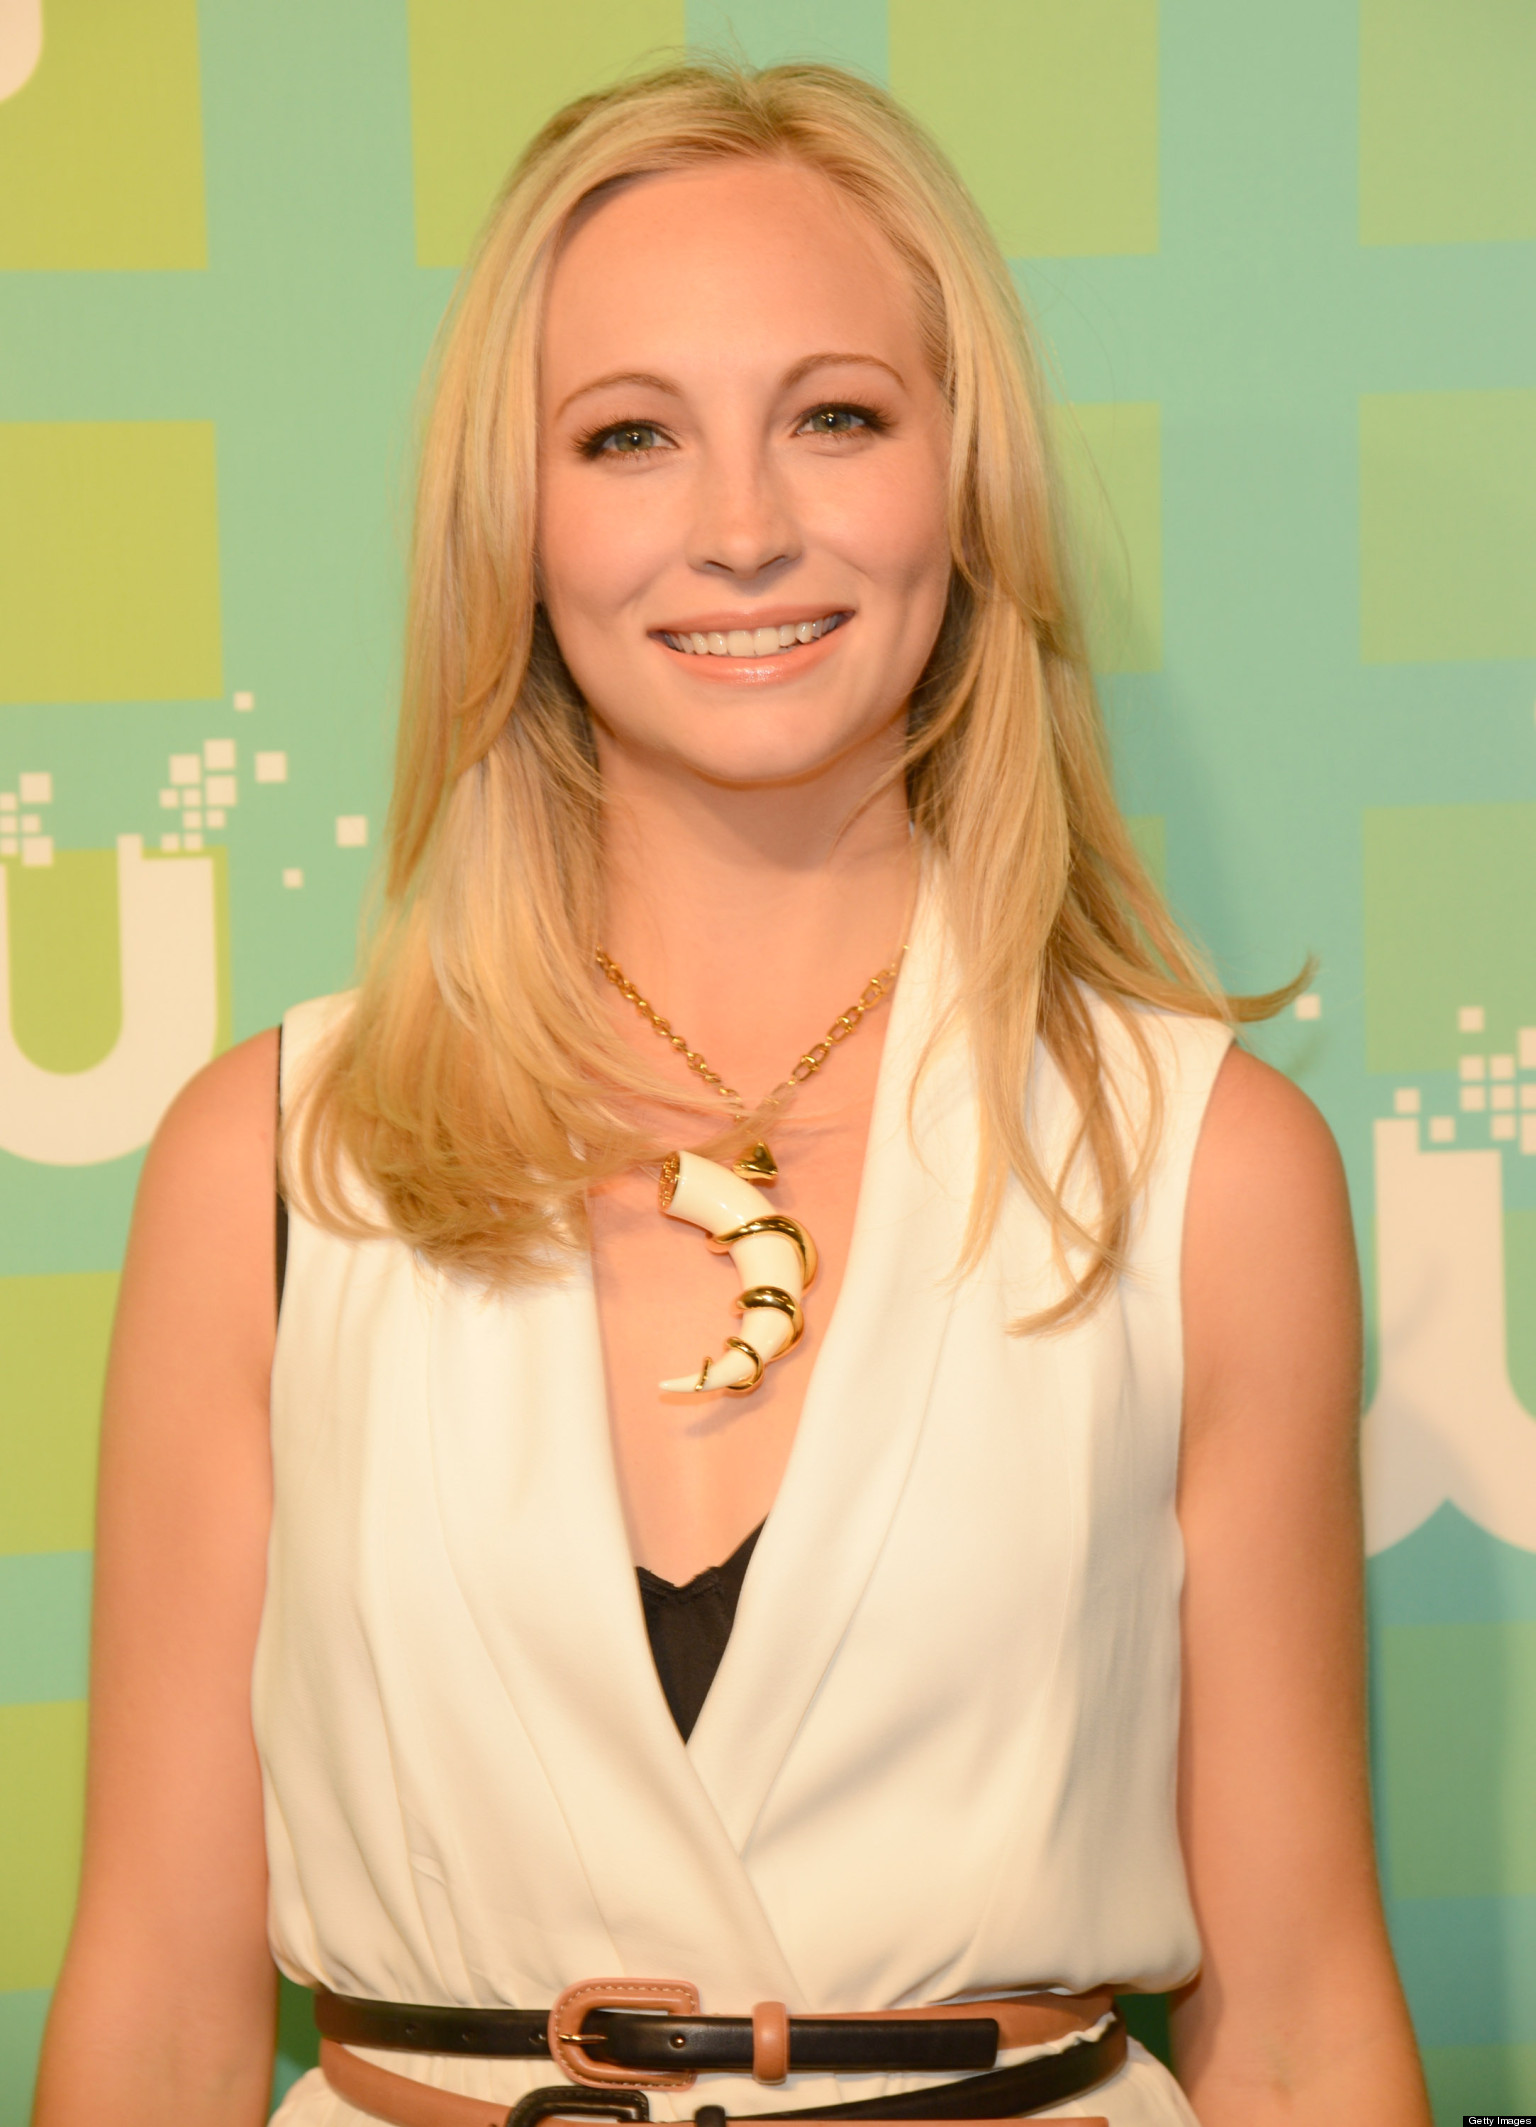 candice accola tumblr